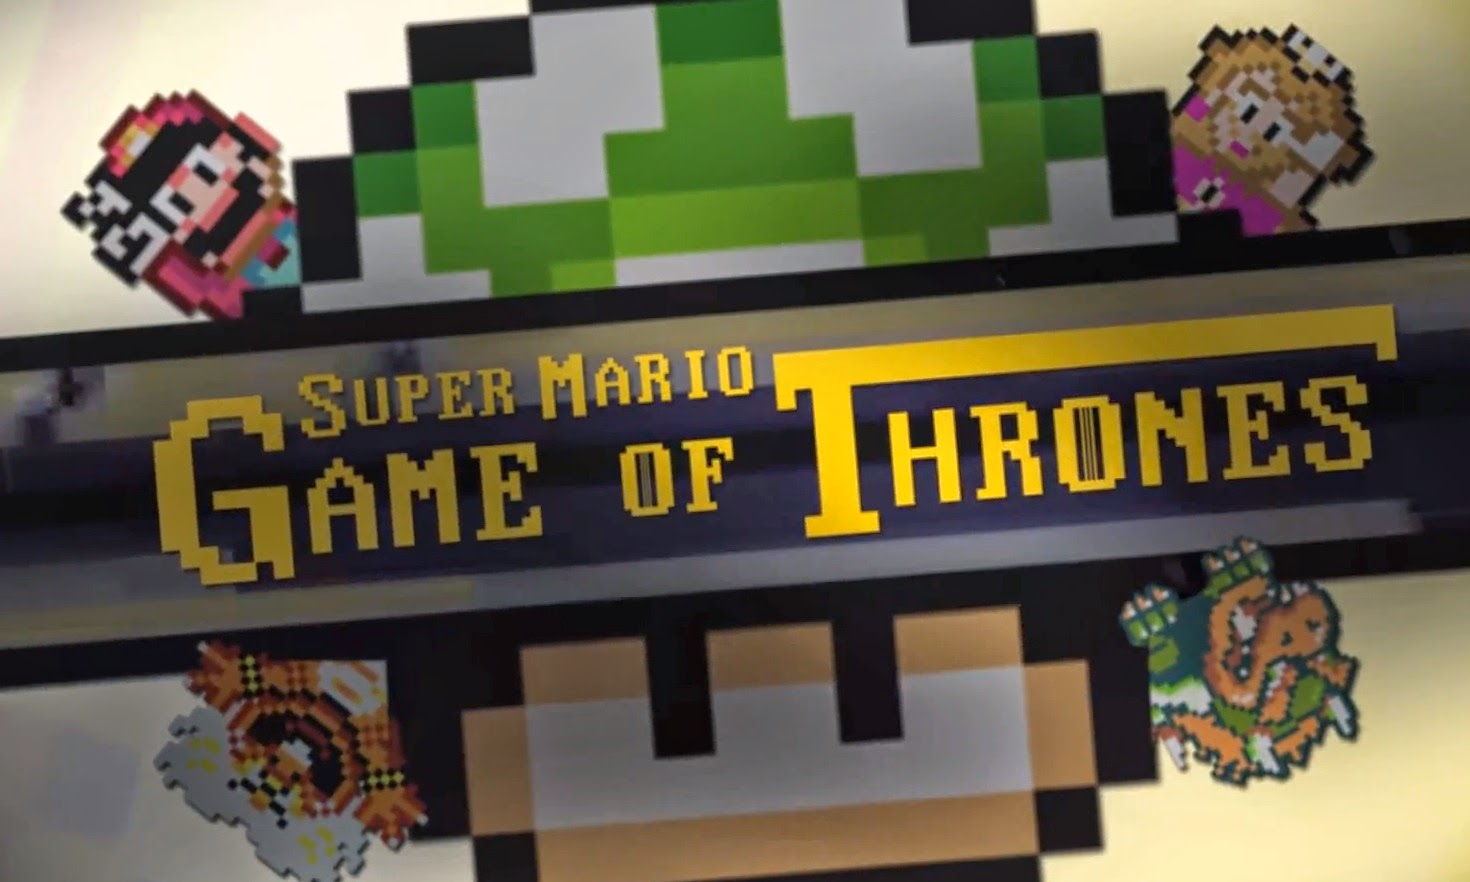 Super Mario World y Game of Thrones Entérate